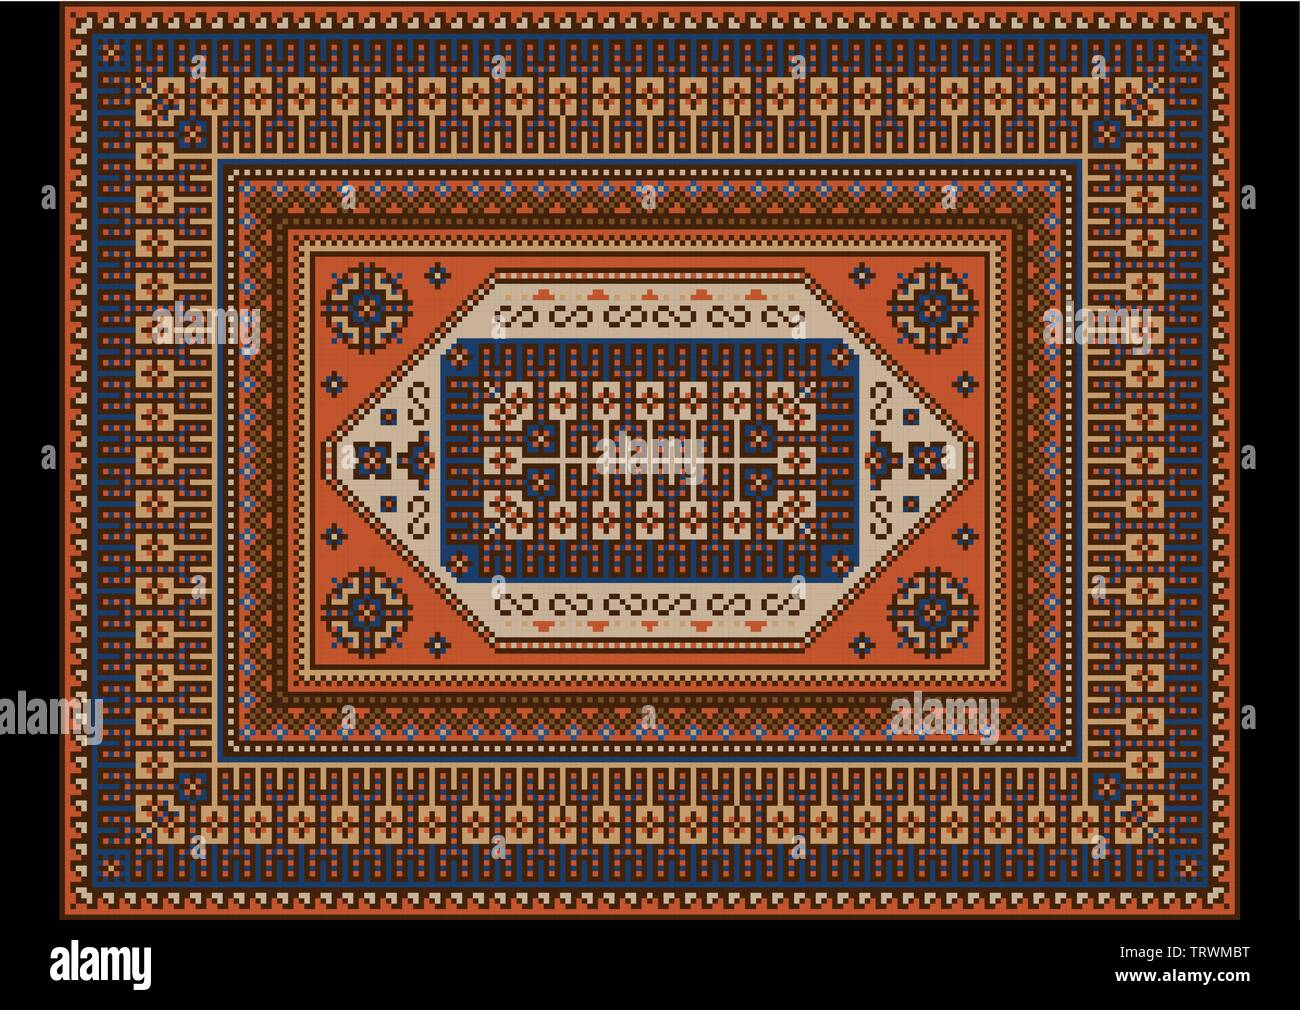 Original luxurious bright vintage oriental rug with orange,blue and brown shades - Stock Image